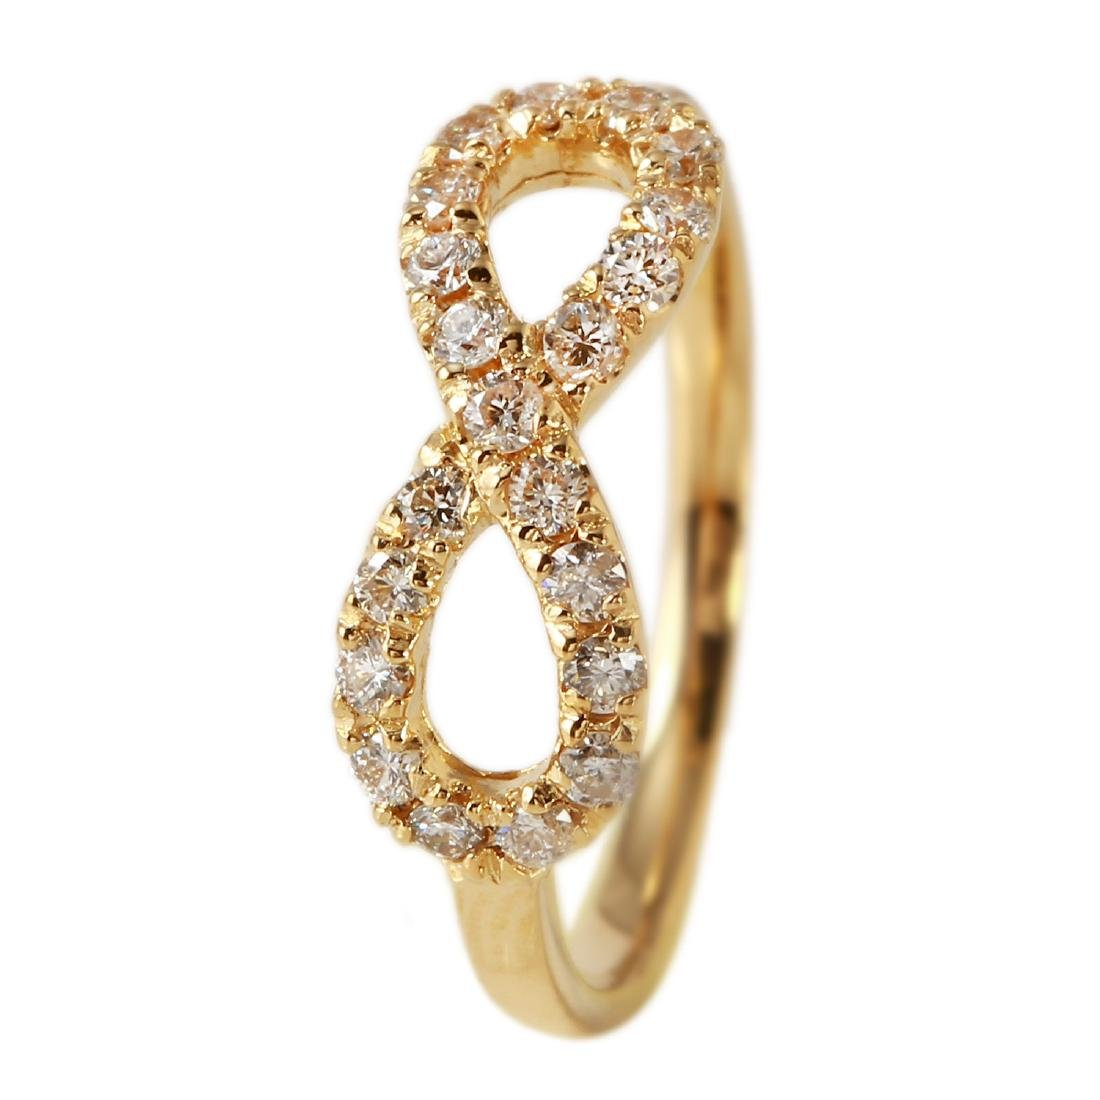 0.40 Carat Natural Diamond 18K Solid Yellow Gold Ring - 2